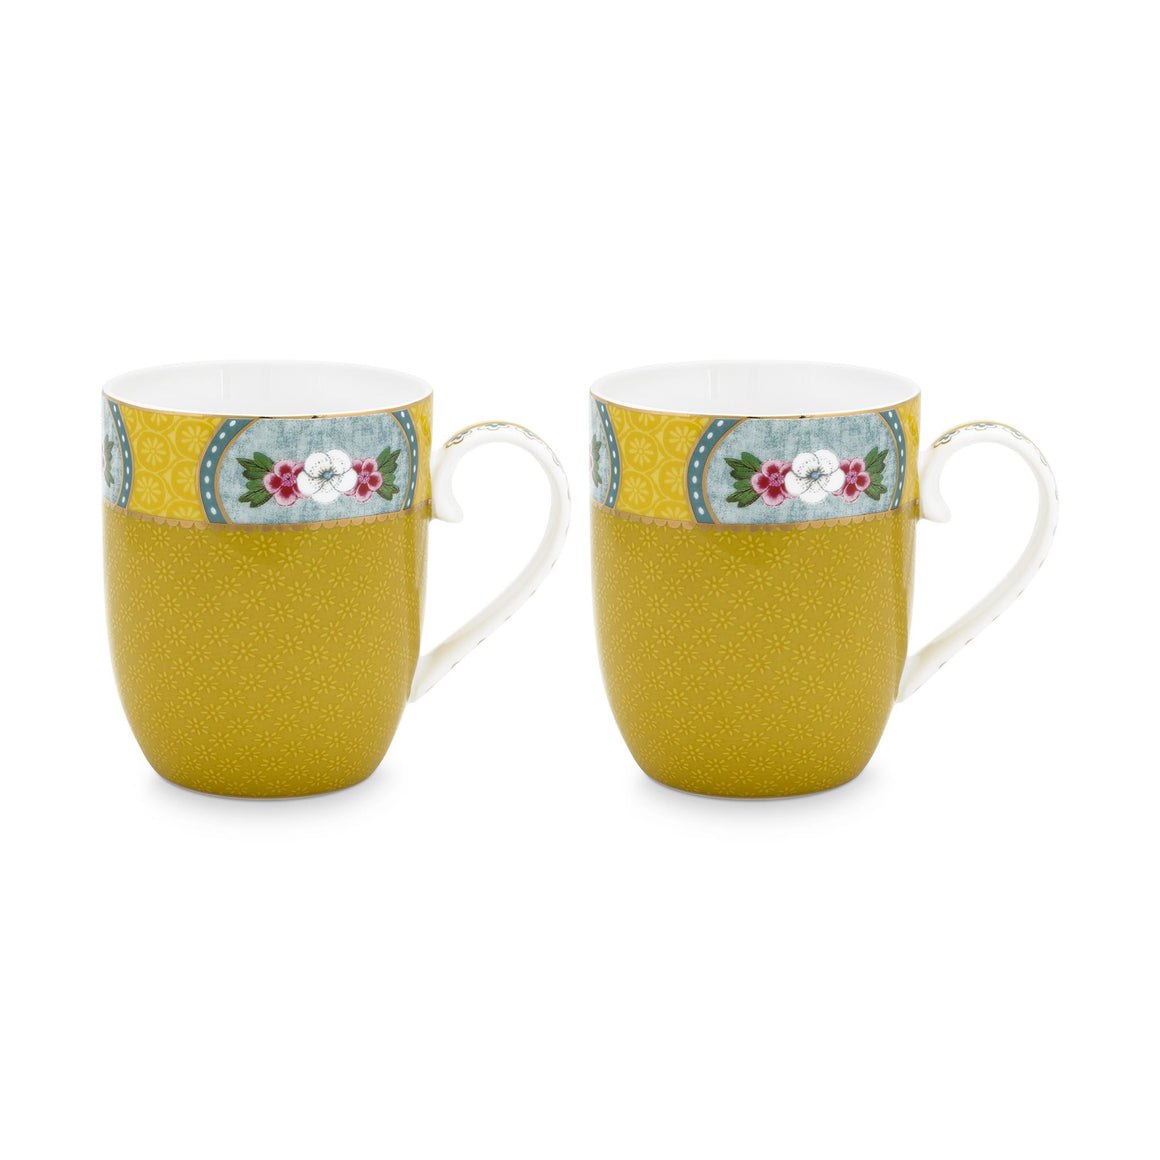 Blushing Birds Double Small Mug Set 145 Ml., Yellow